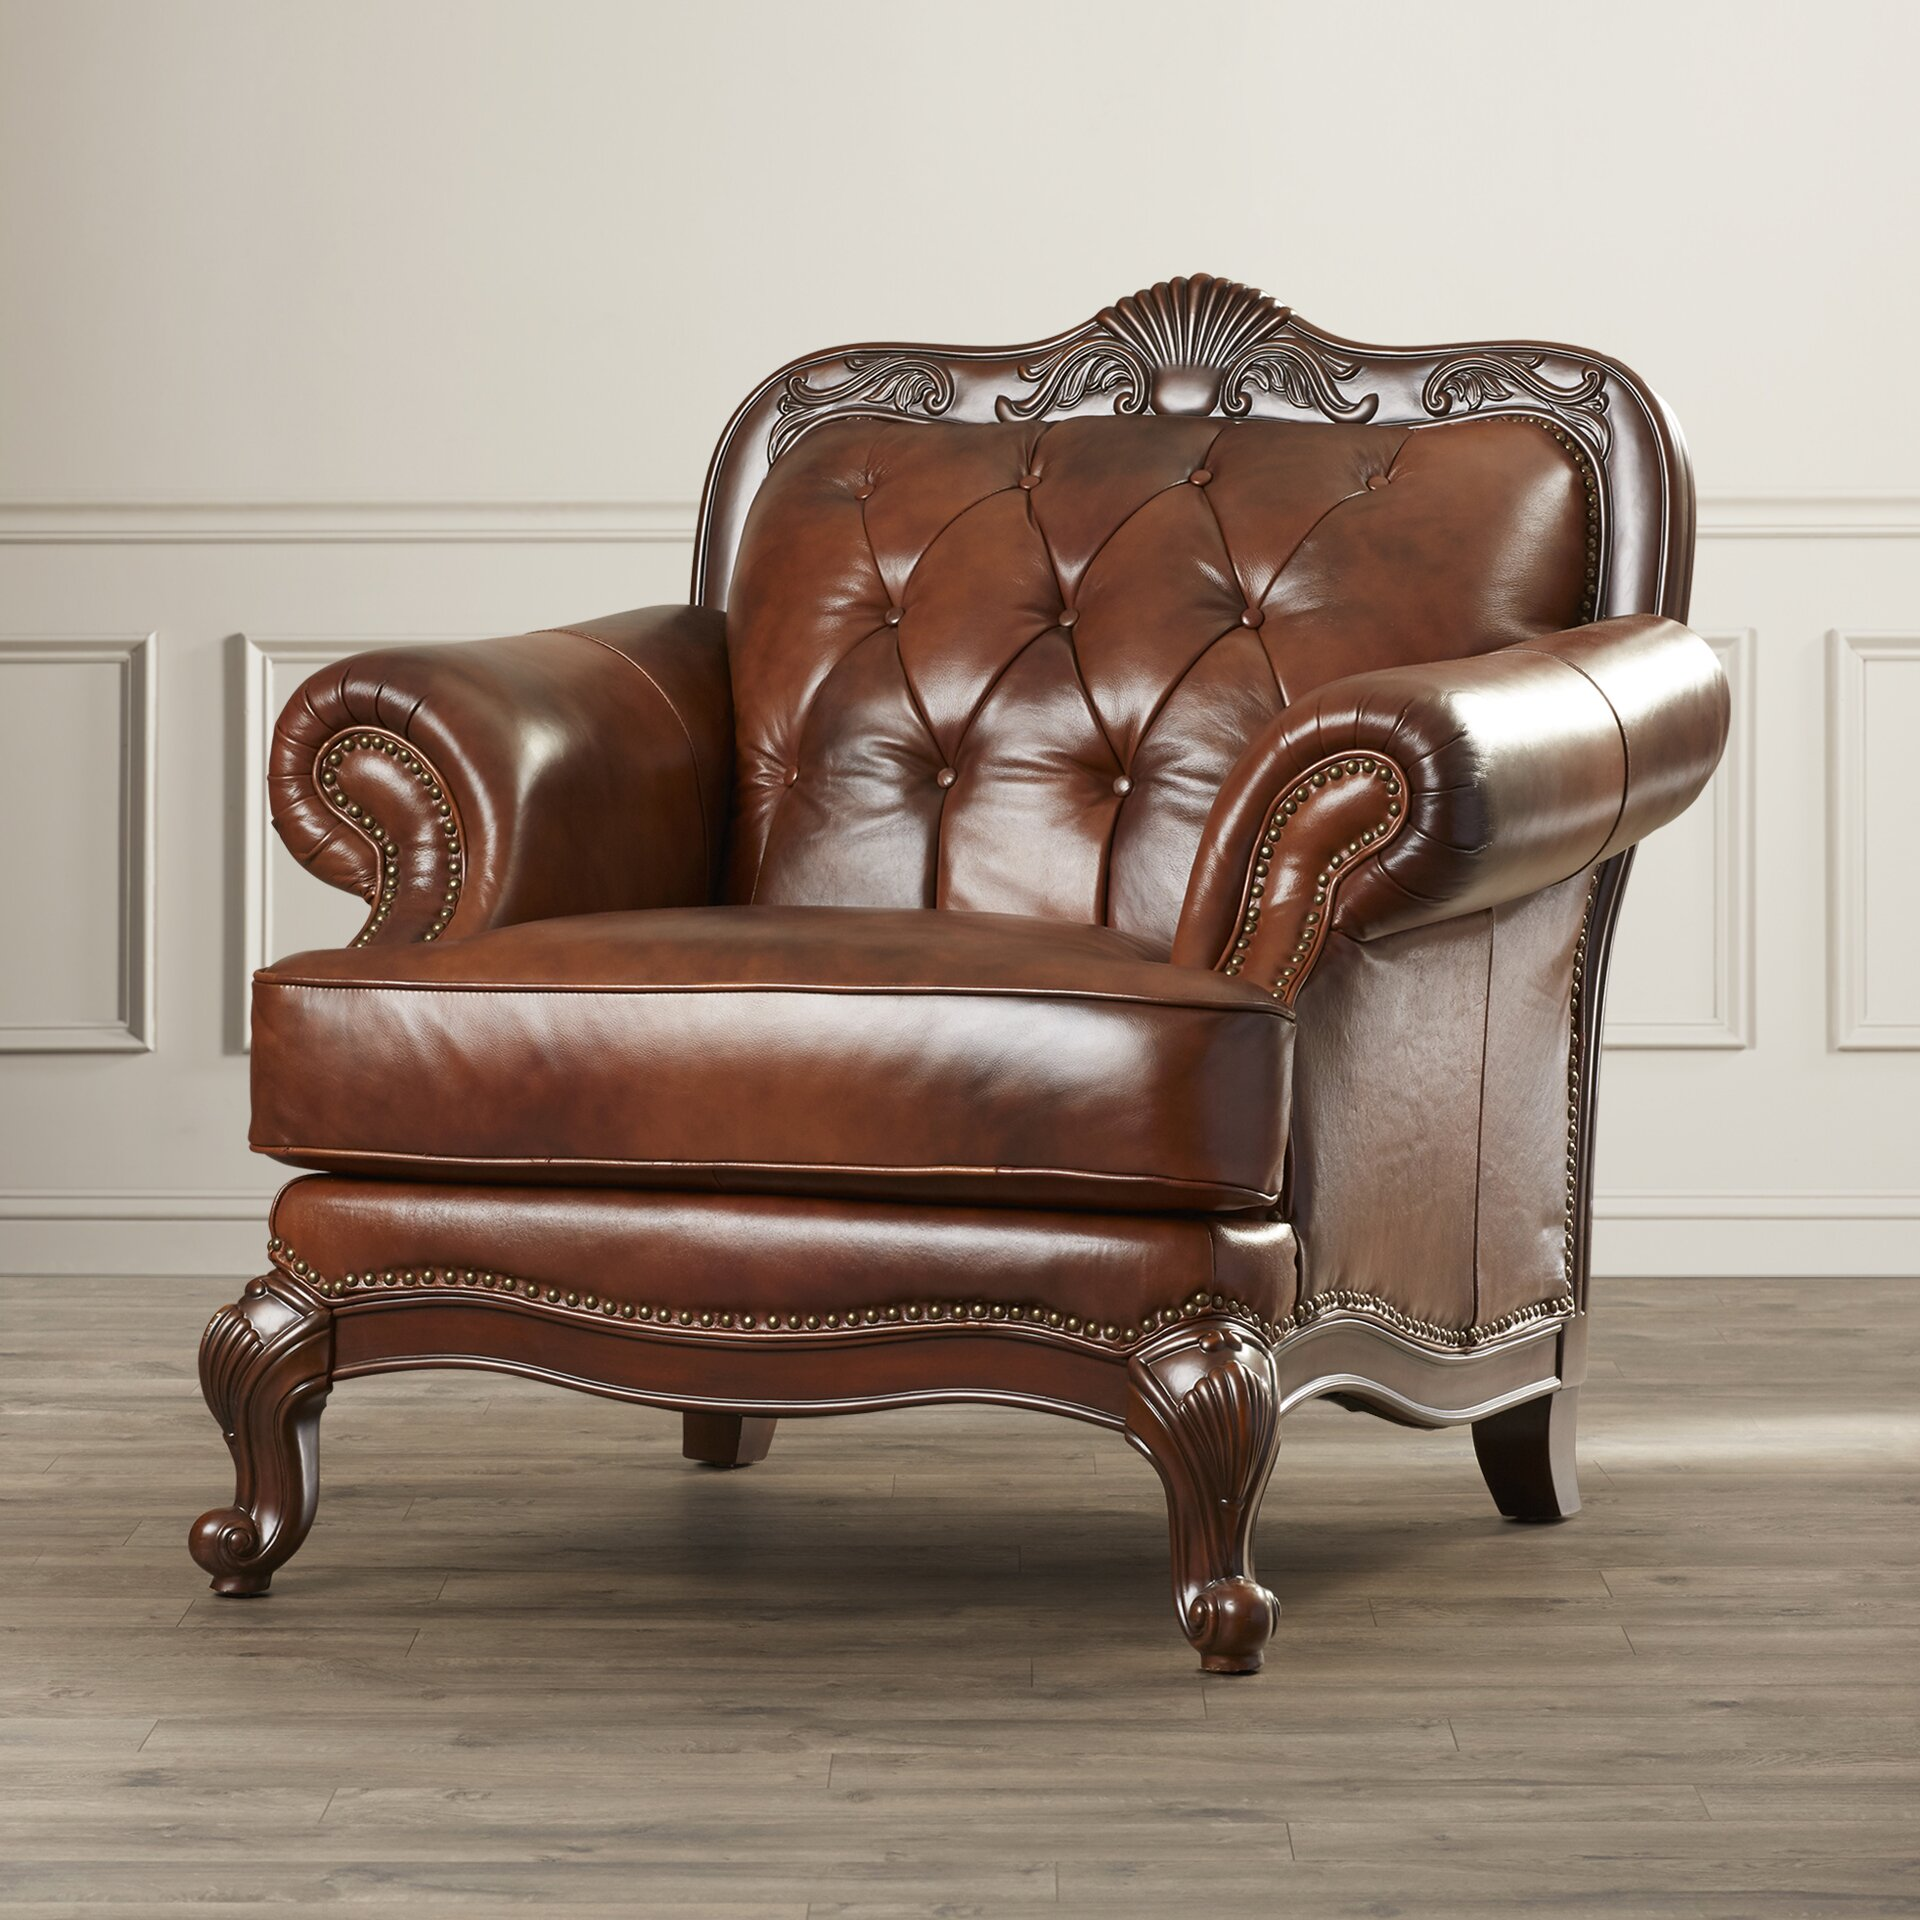 darby home cou0026reg smith leather club chair - Brown Leather Club Chair